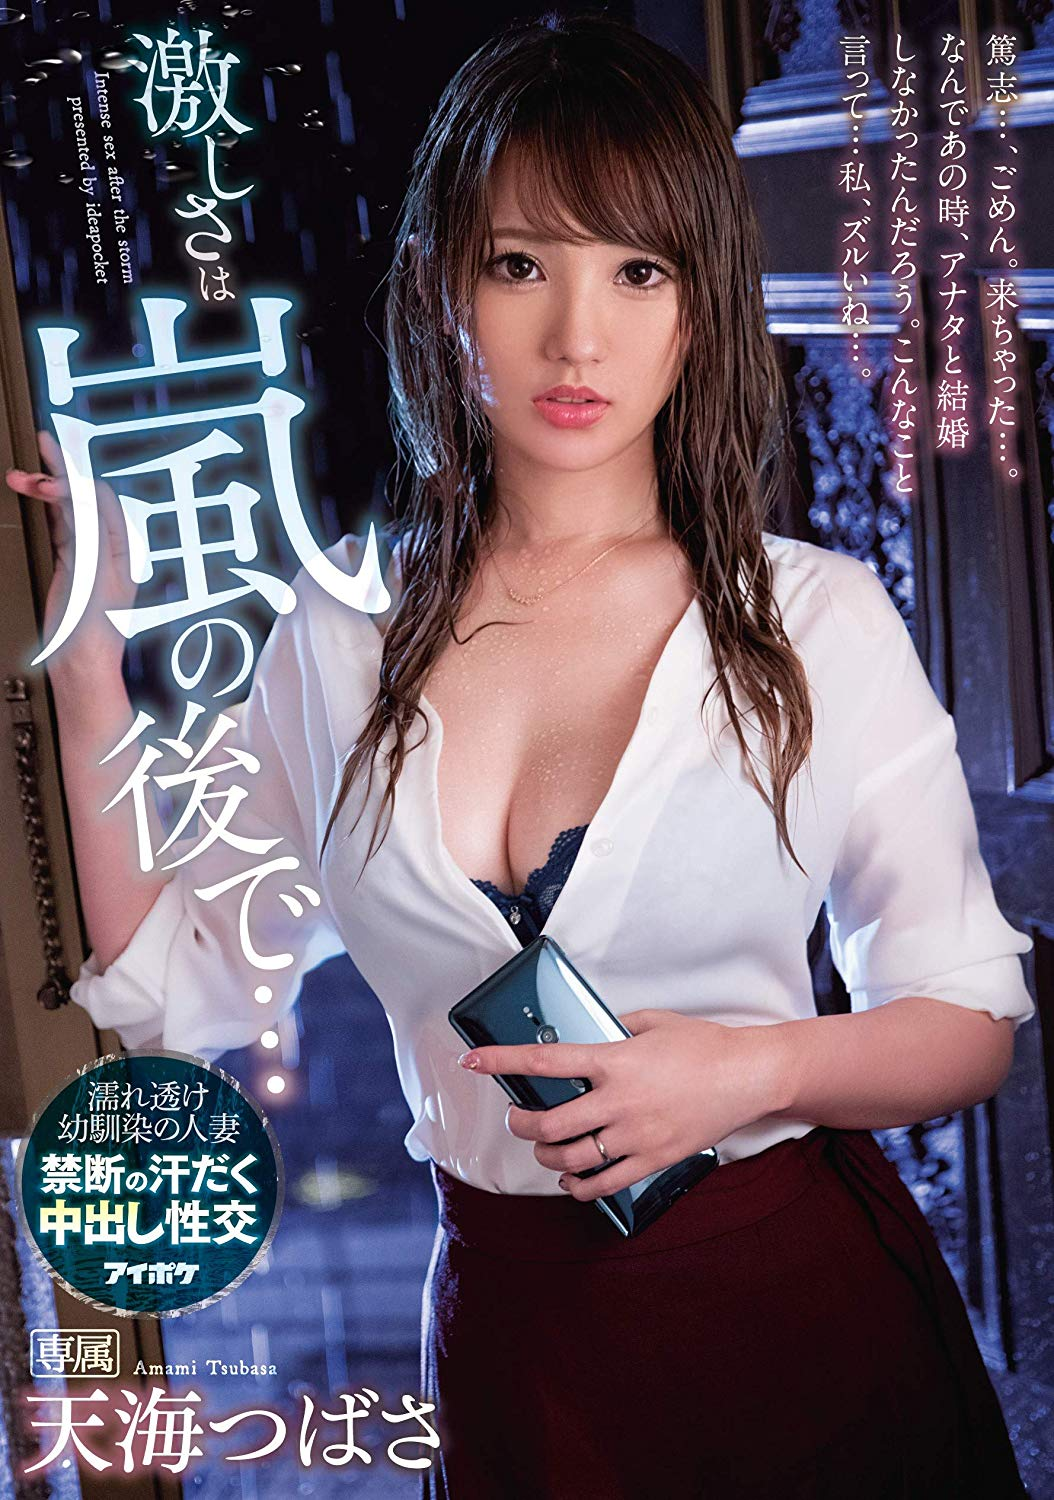 [IPX-440] The Fury Began After The Storm… – Tsubasa Amami